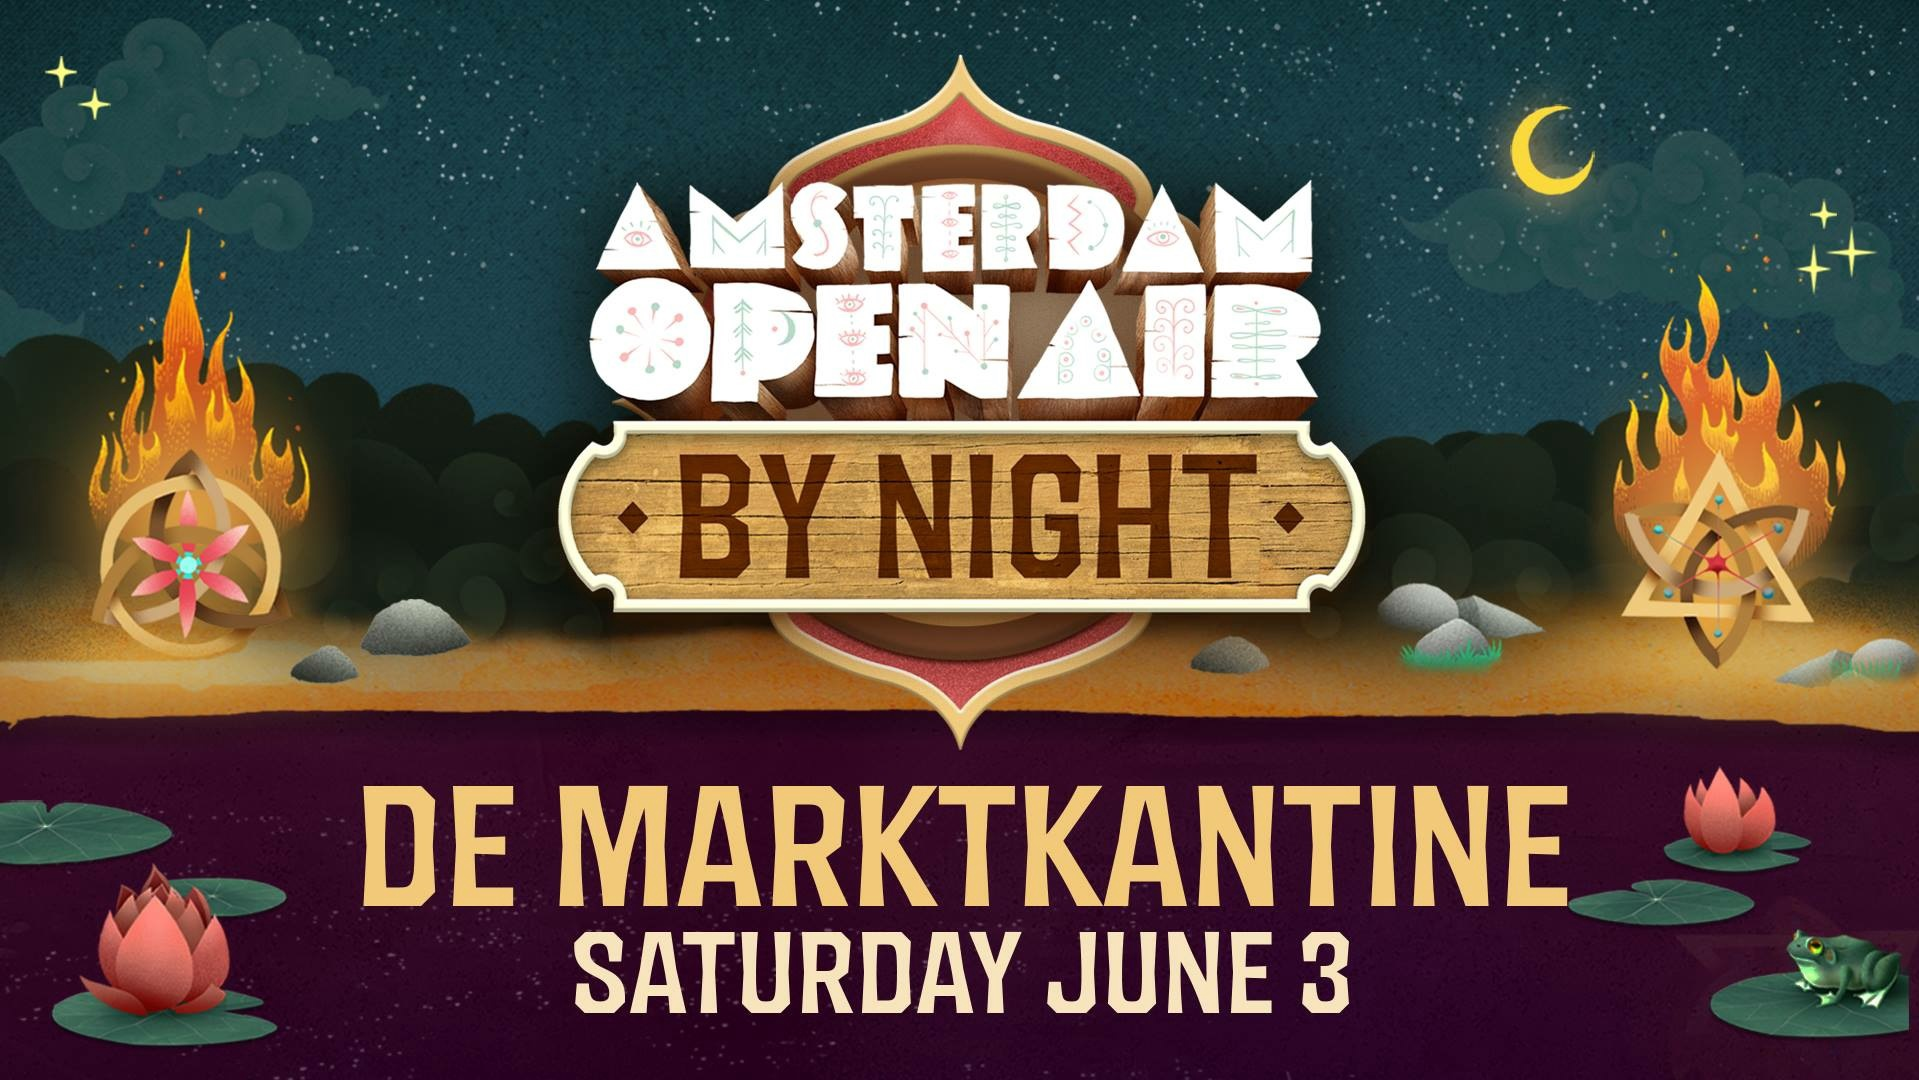 Amsterdam Open Air By Night